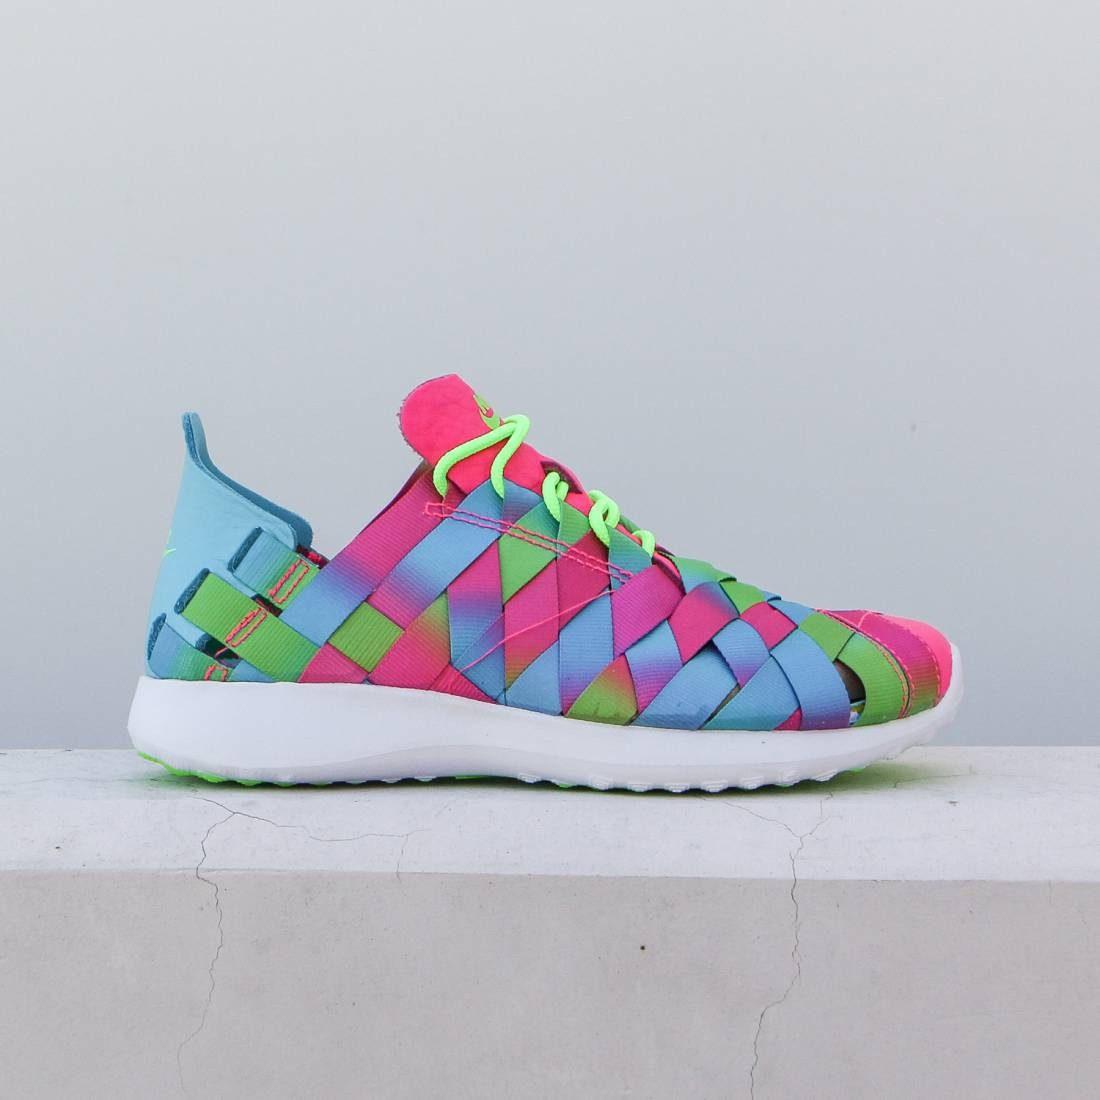 dde3febefd8 Nike Women Juvenate Woven Premium Women'S Shoe (gamma blue / electric green  / white / pink blast)